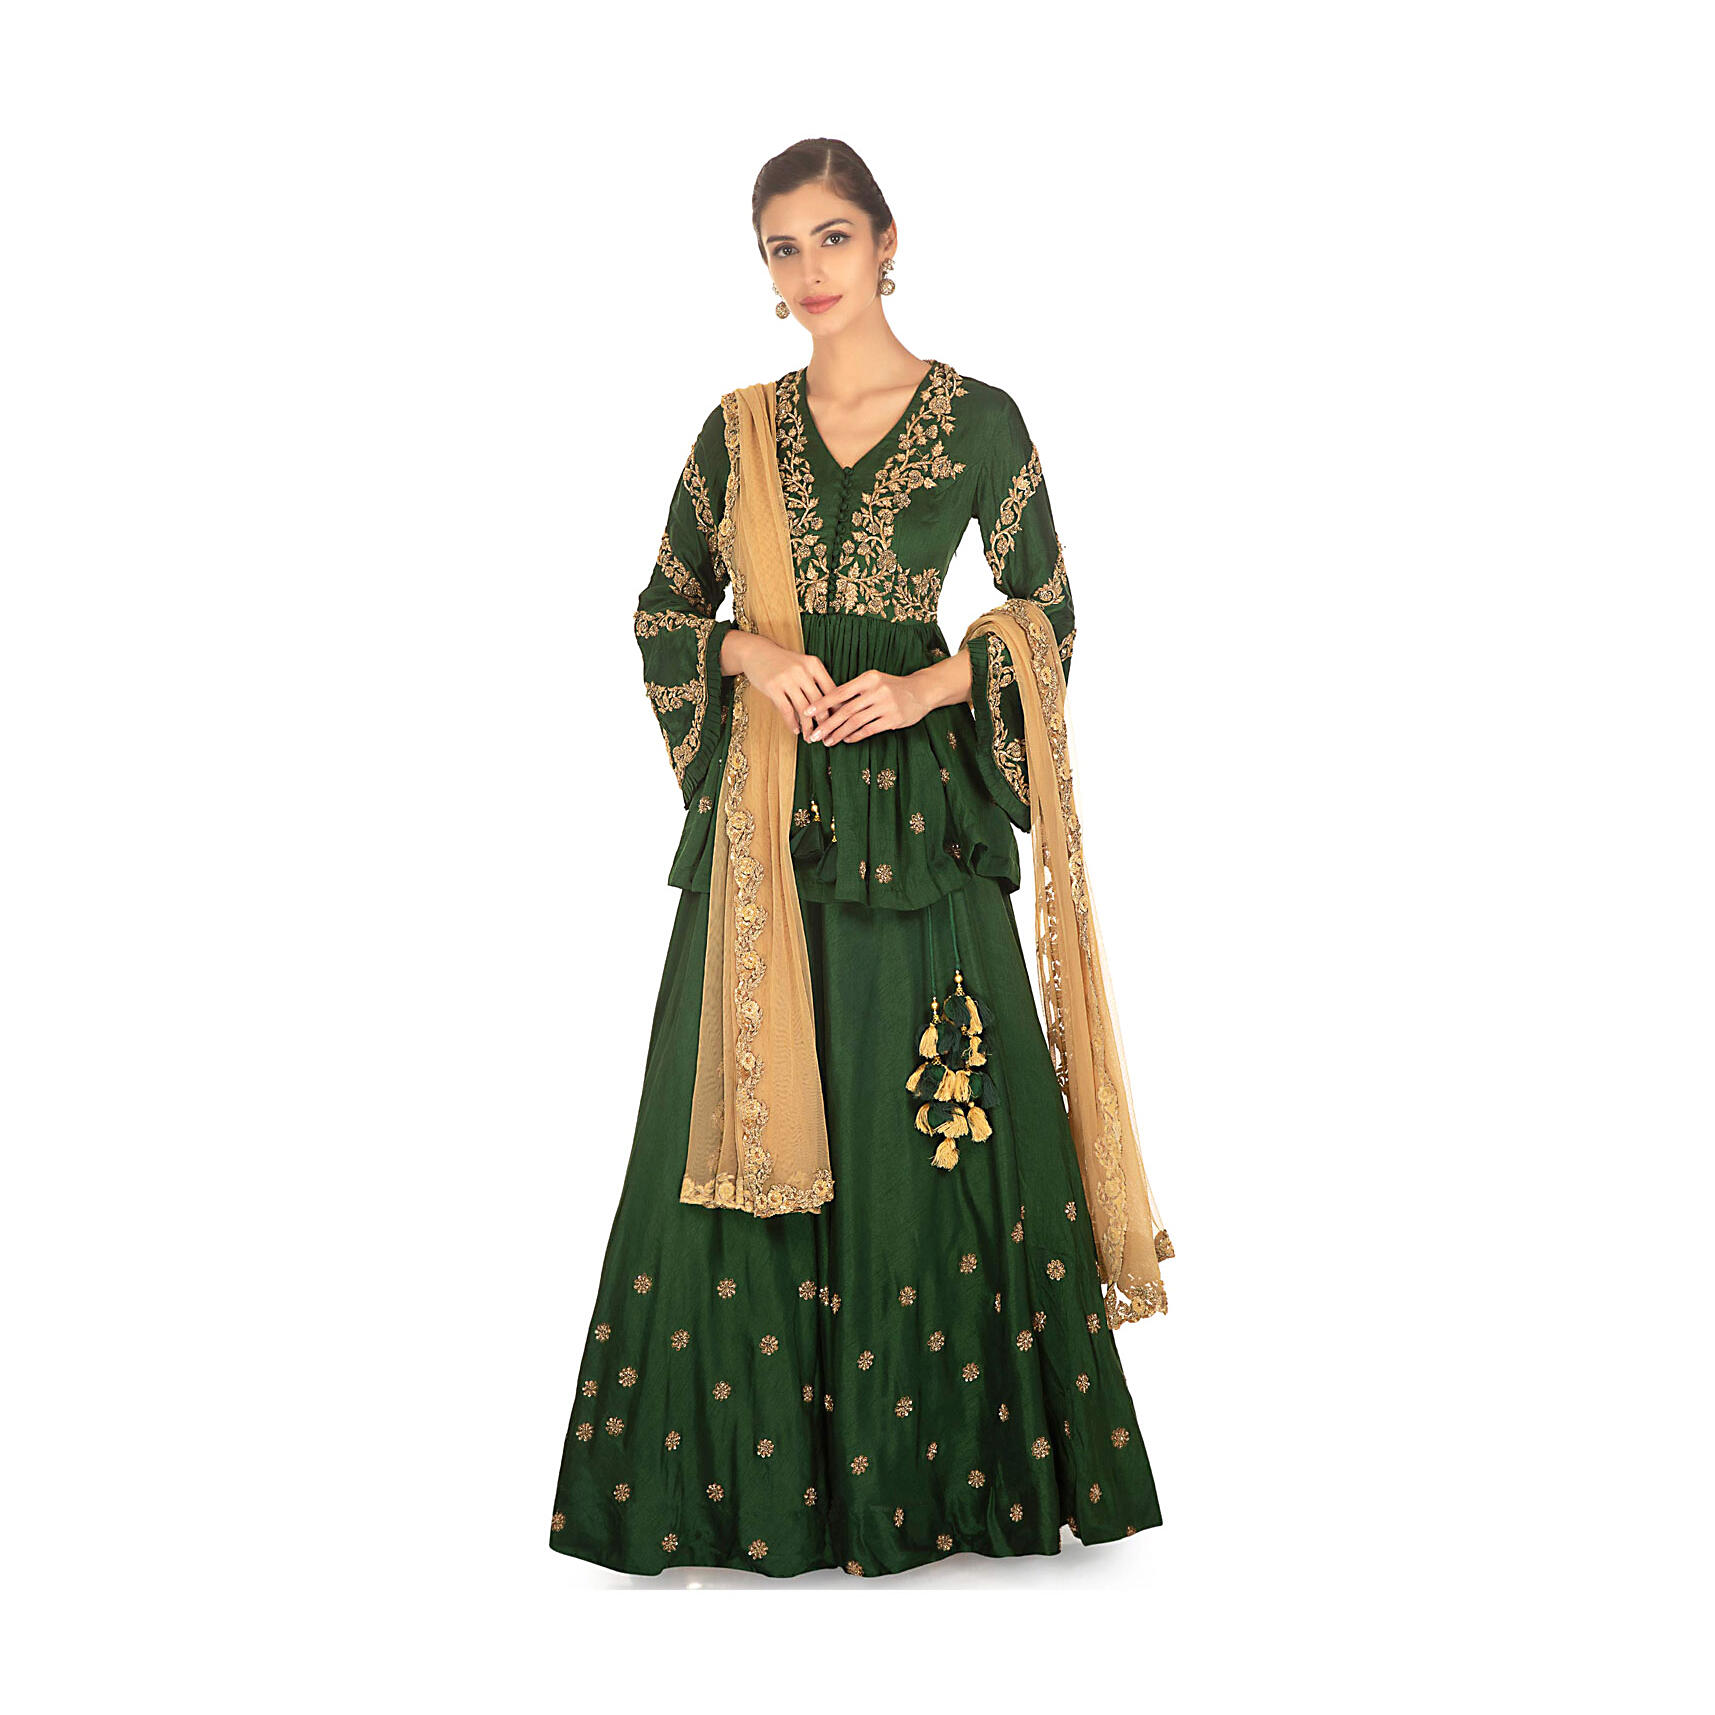 d2470293dd9f0 Rama green lehenga paired with embellished peplum top and a contrasting  beige net duppata only on Kalki